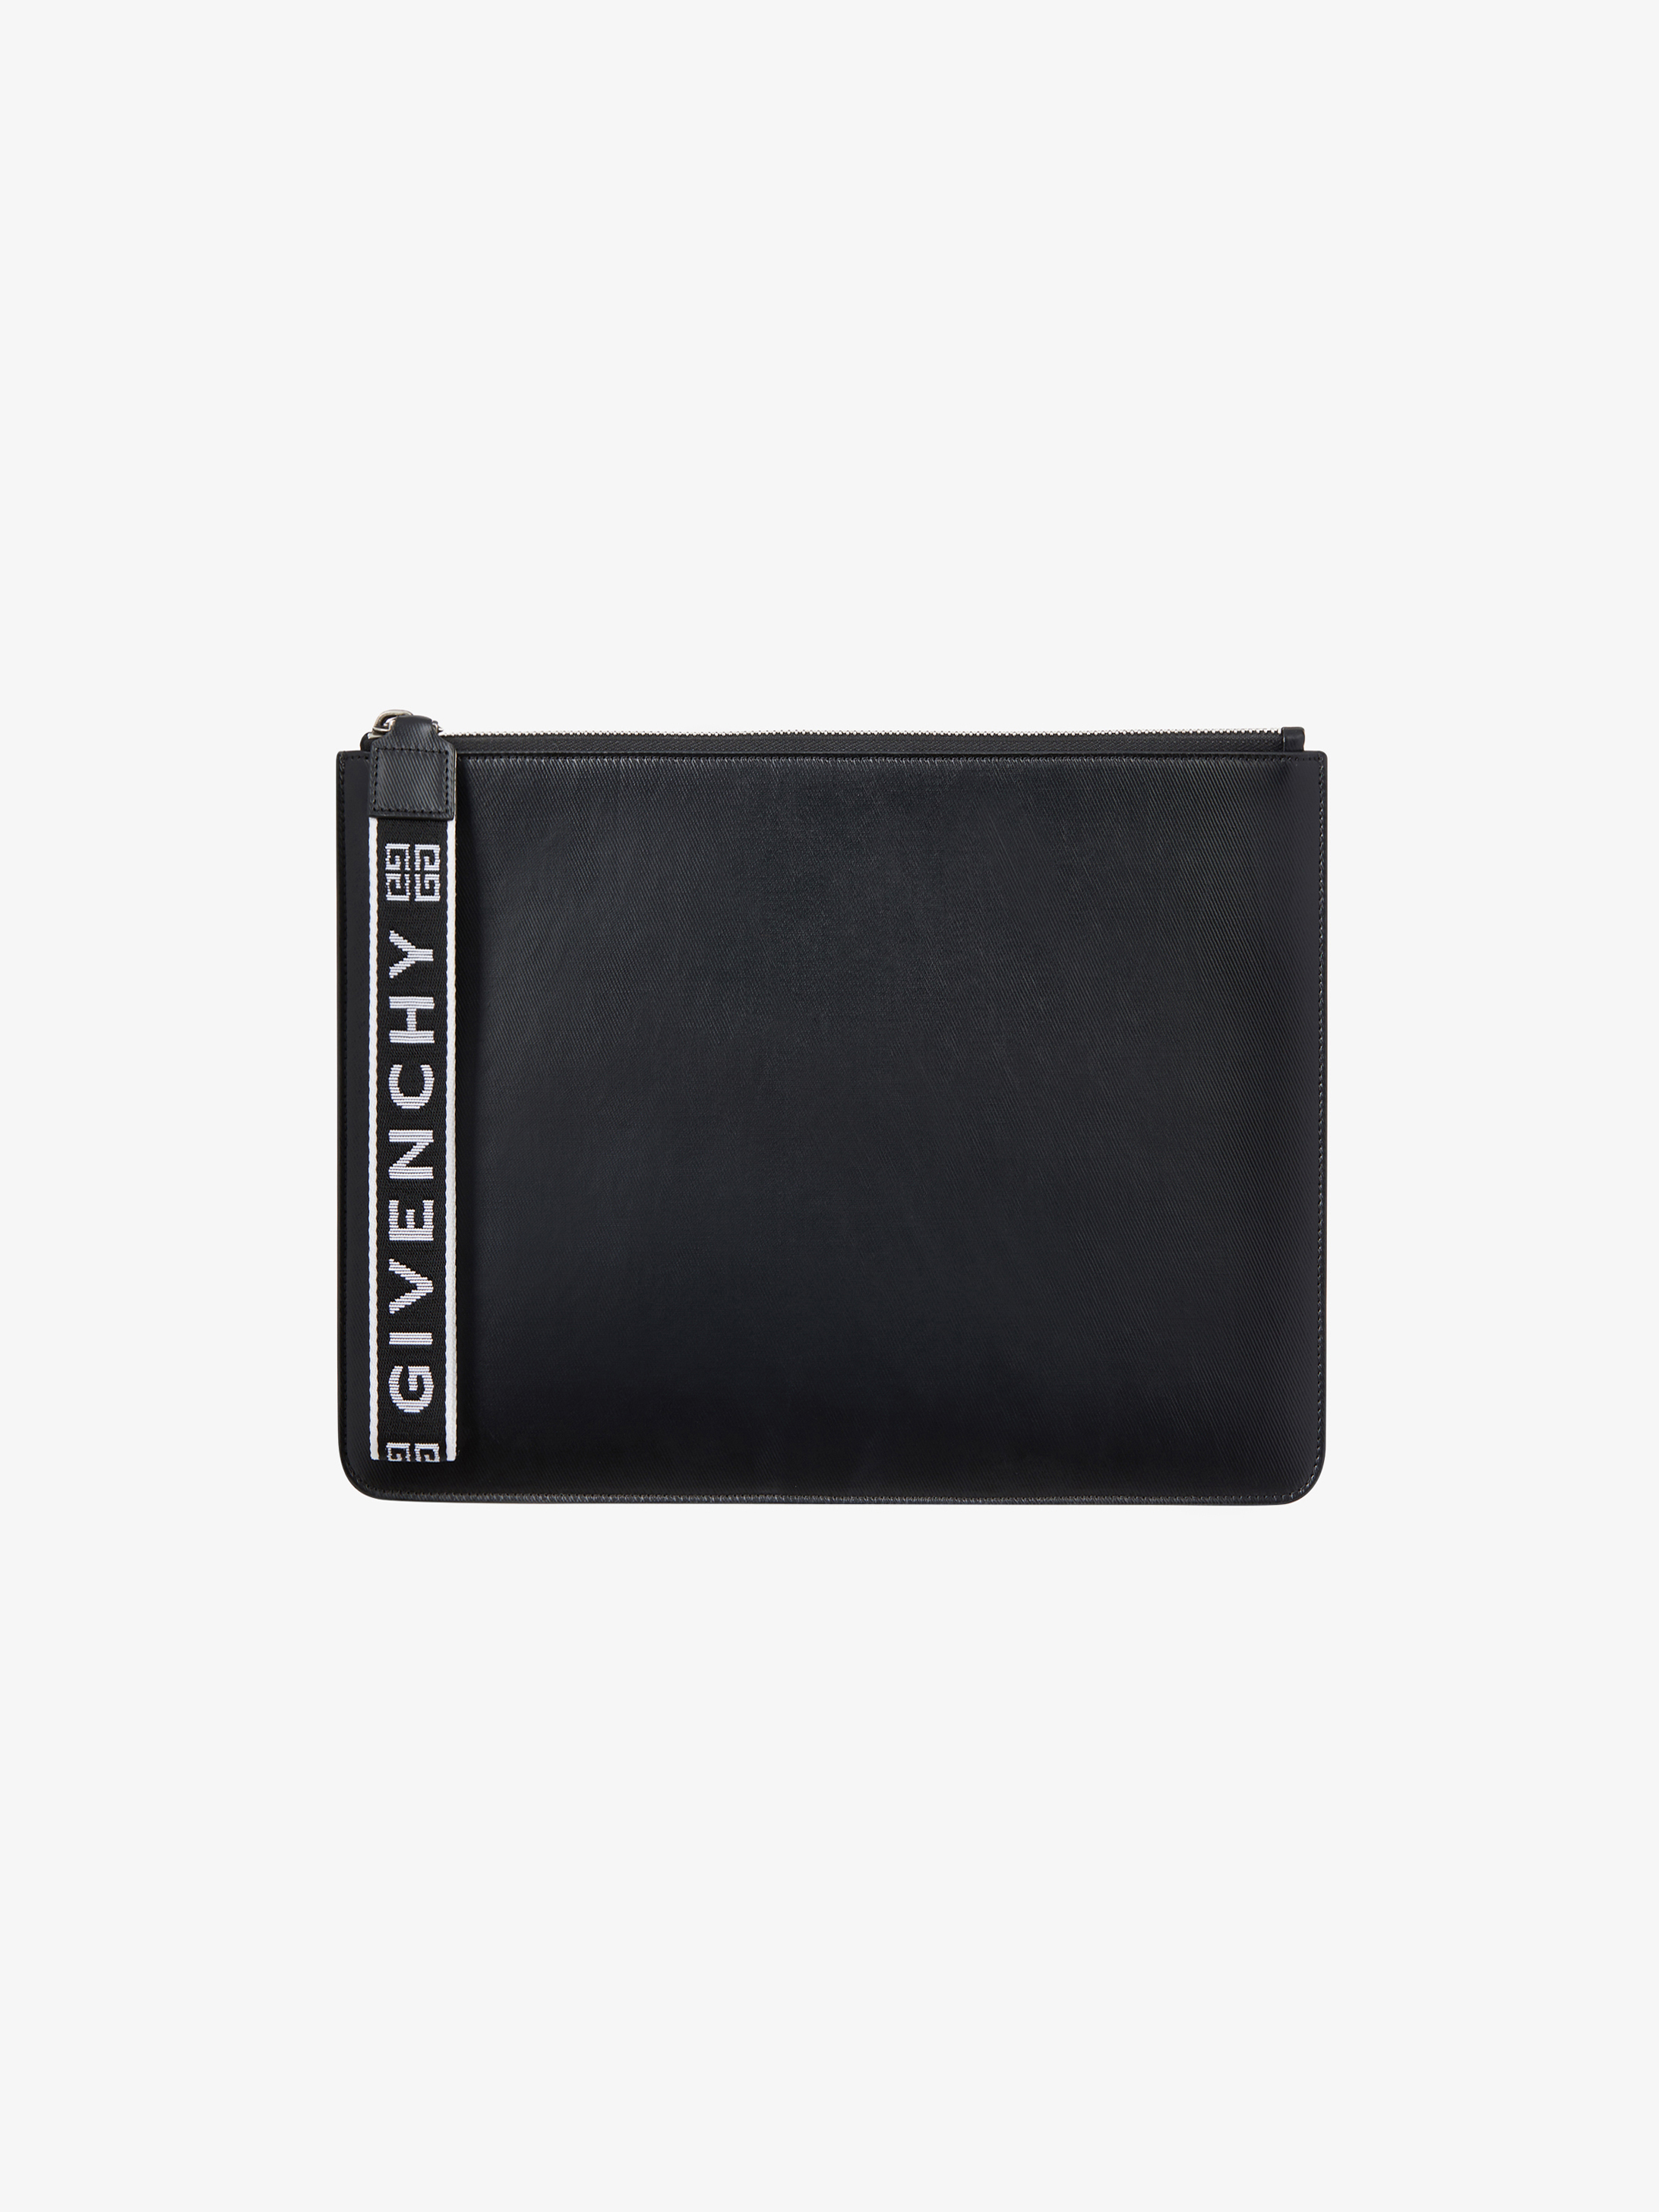 GIVENCHY 4G wrist strap large pouch